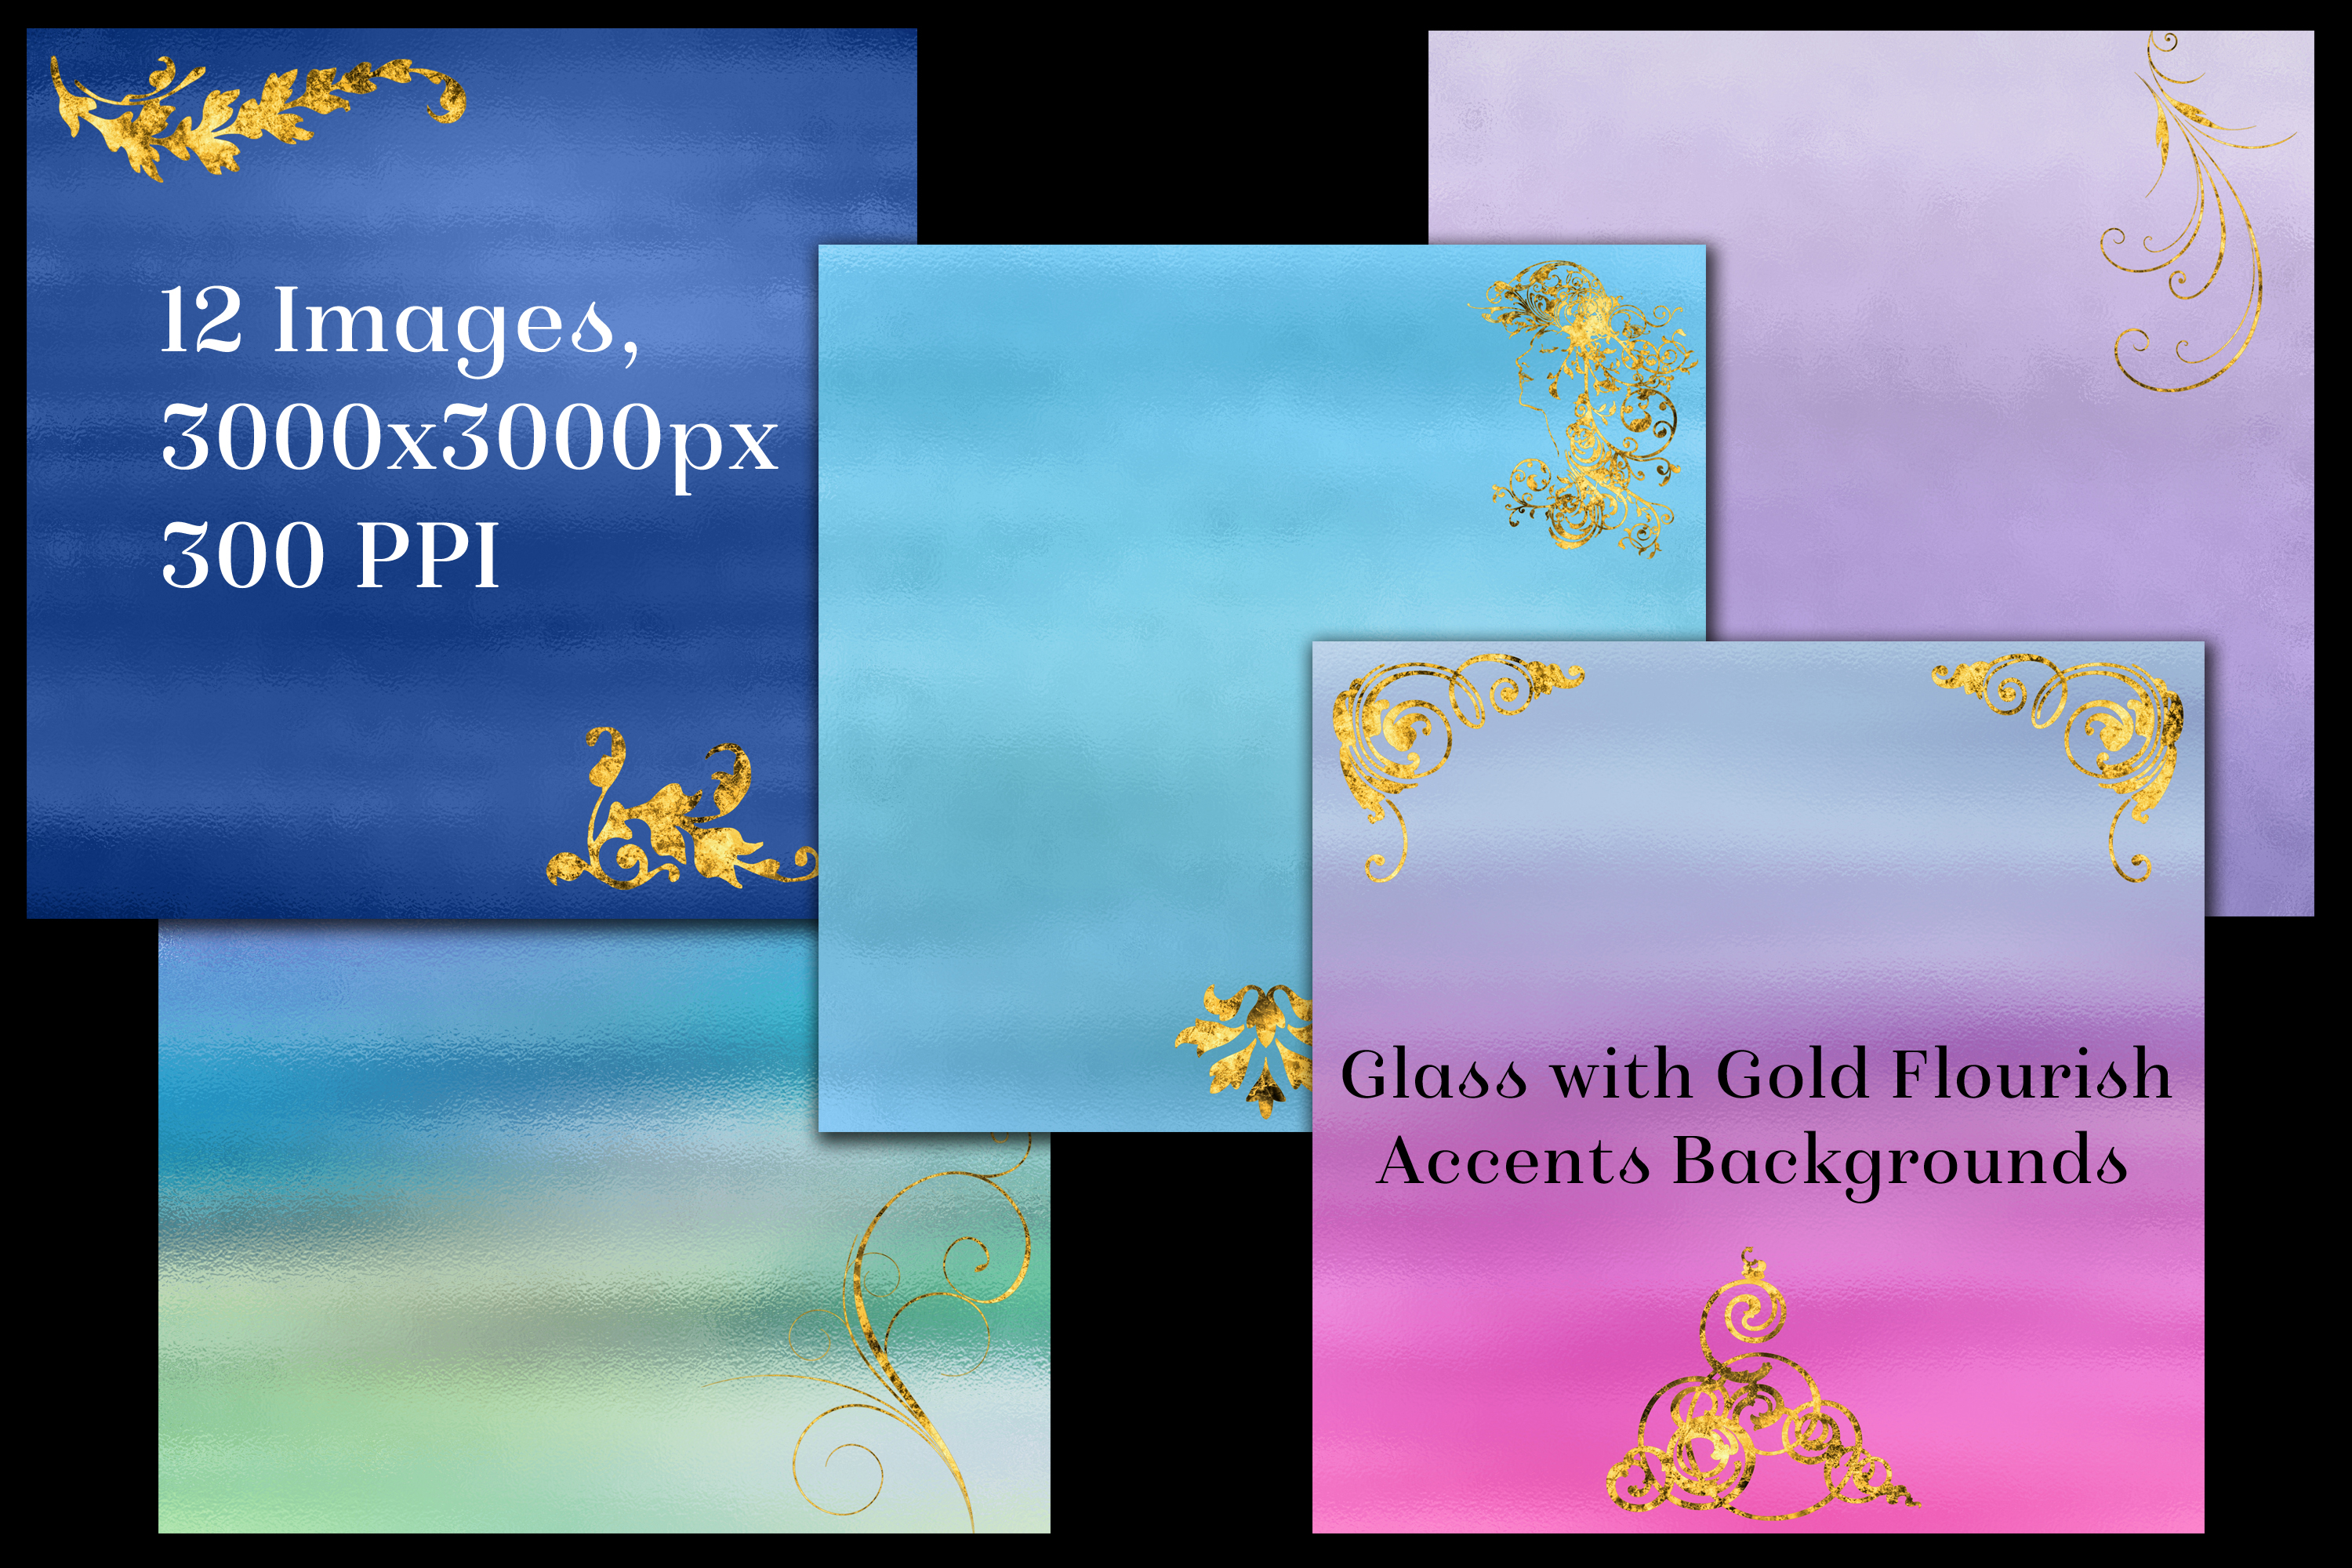 Glass with Gold Flourish Accents Backgrounds - 12 Images example image 2